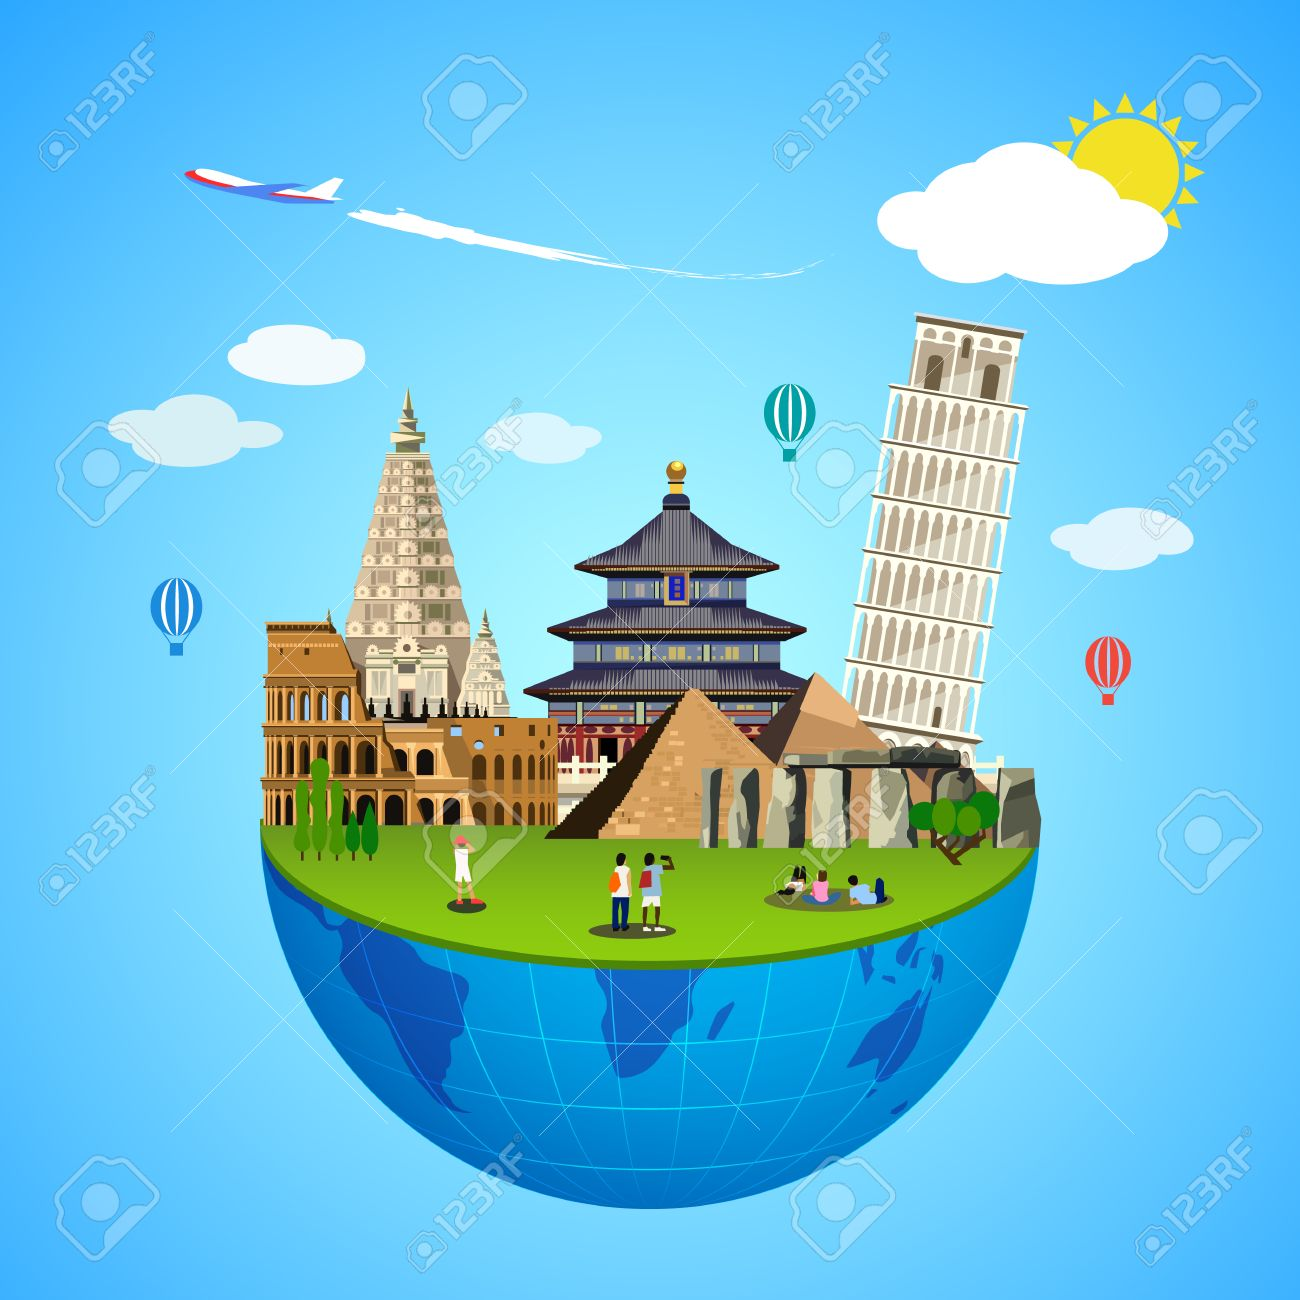 World Landmarks Concept Vector Illustration For Travel Design Royalty Free Cliparts Vectors And Stock Illustration Image 66437791